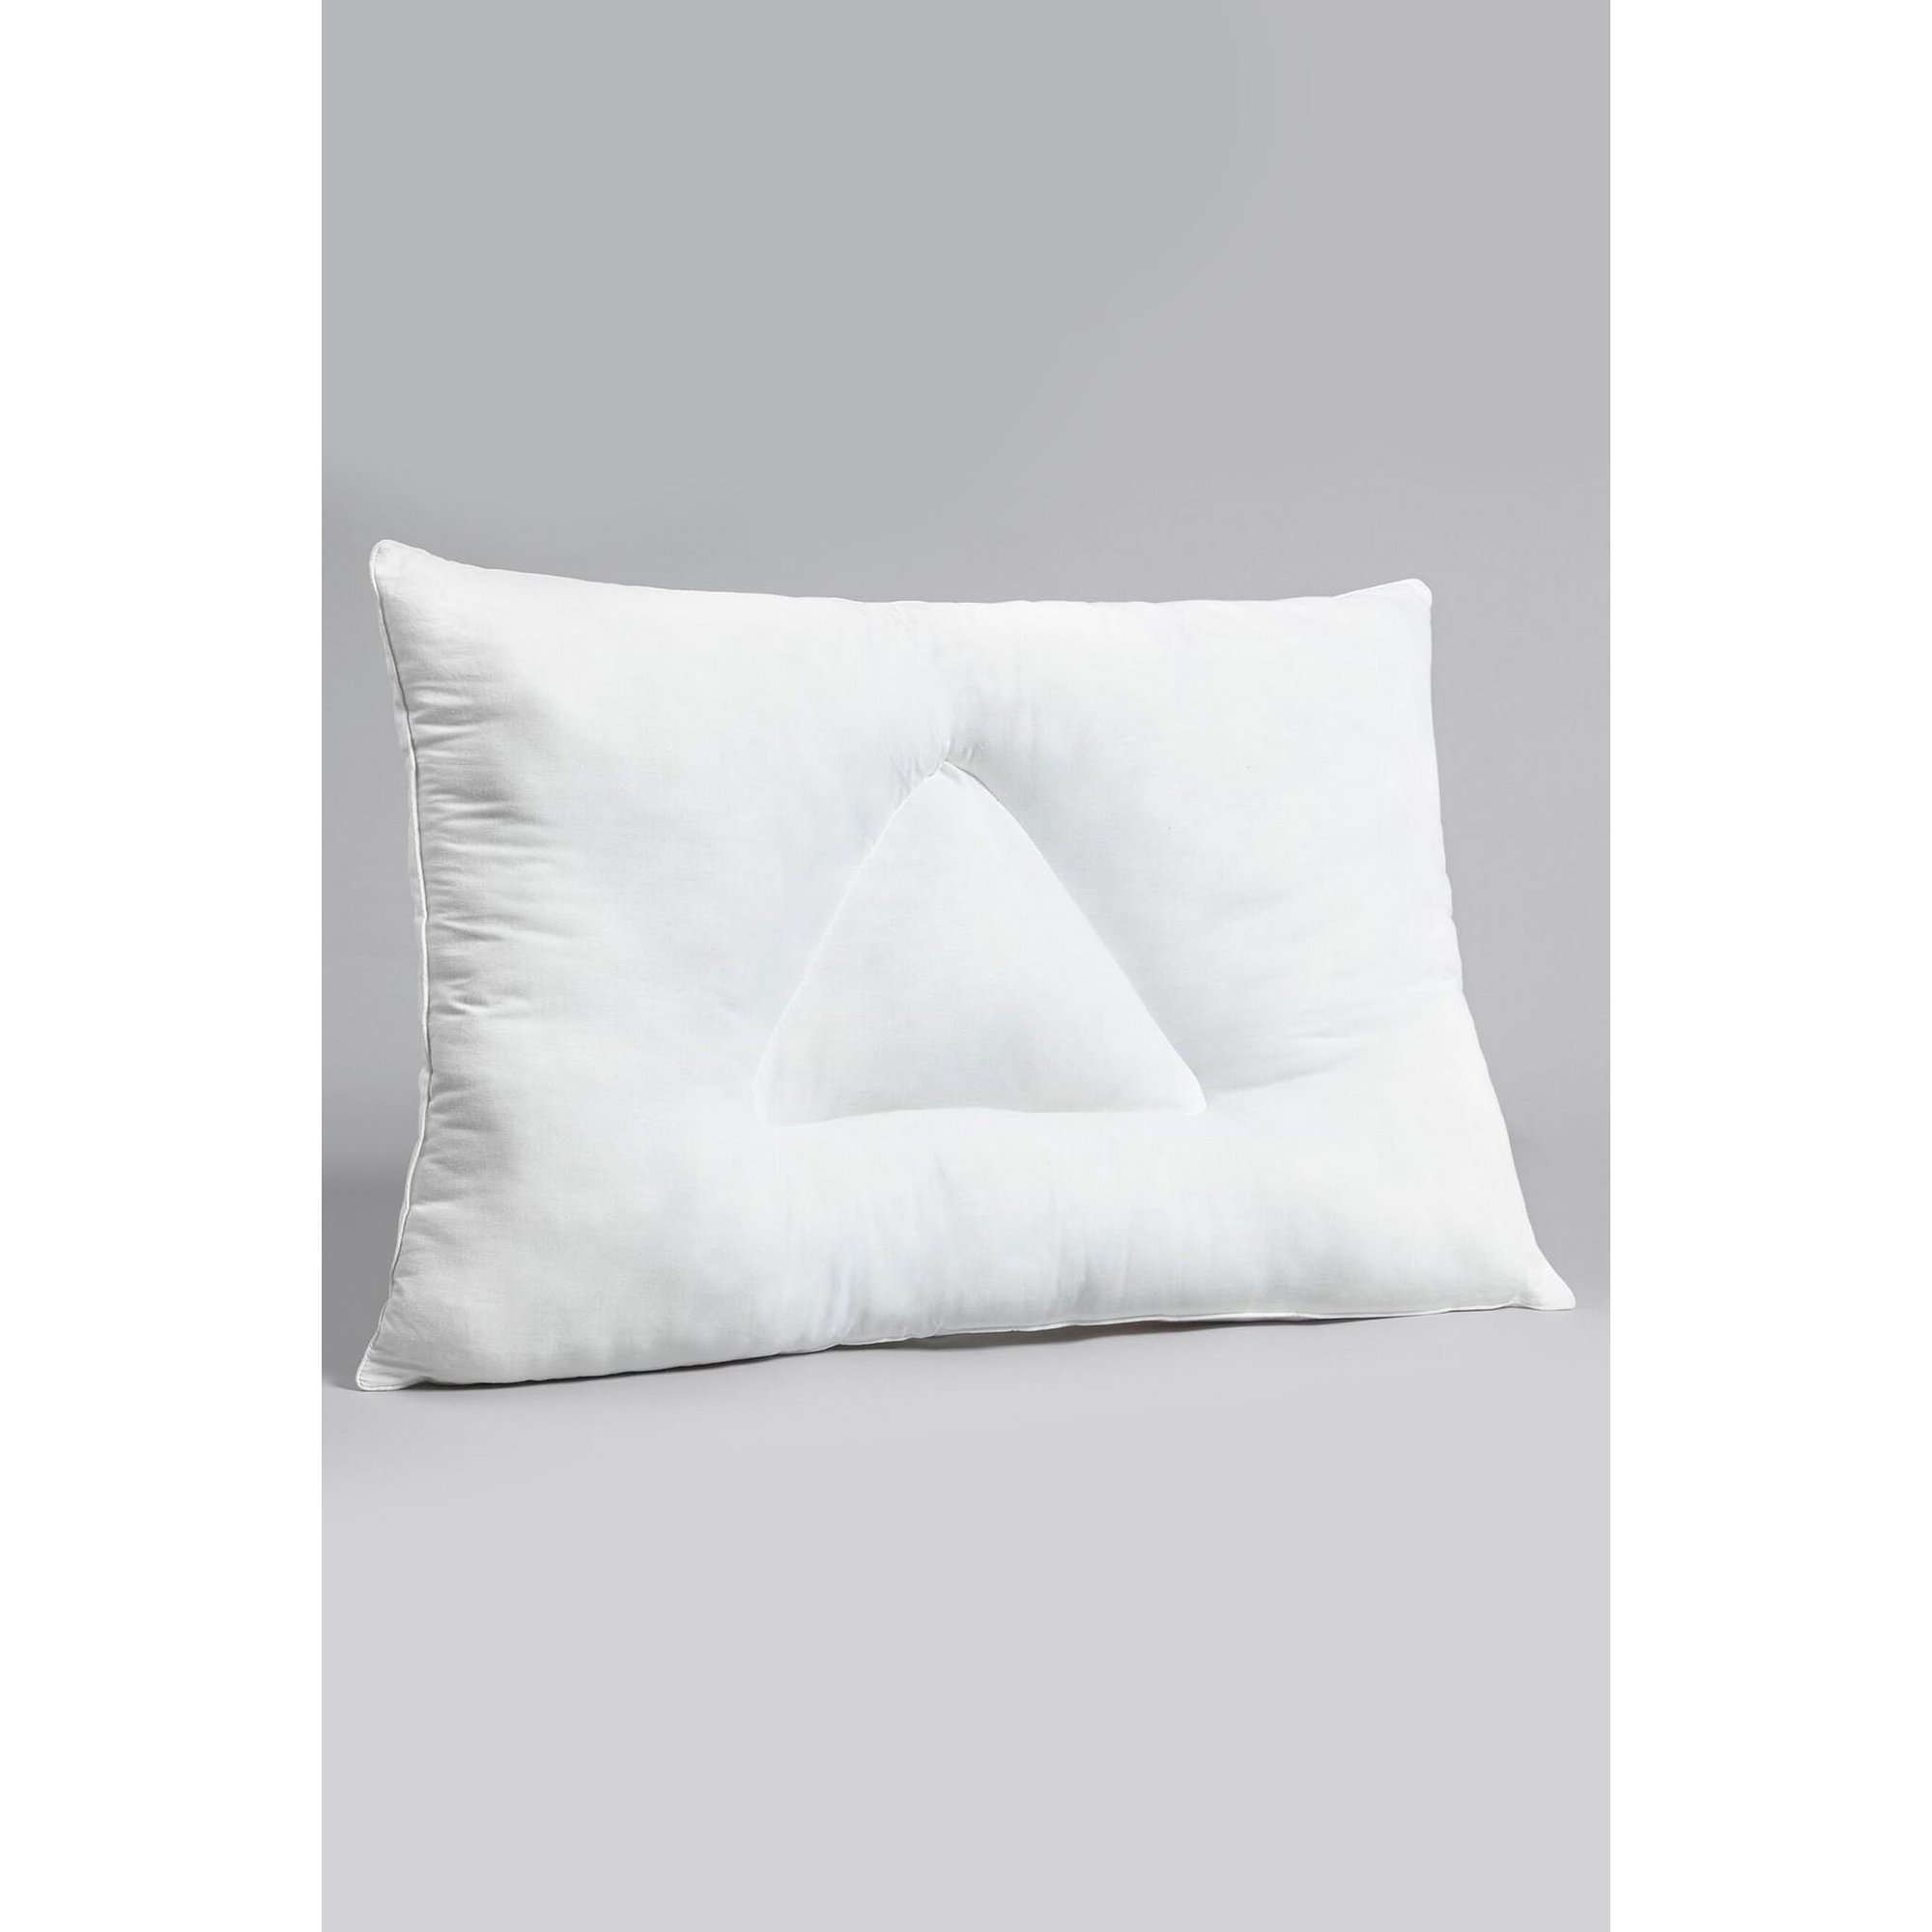 Image of Dr Twiner Pyramid Pillow